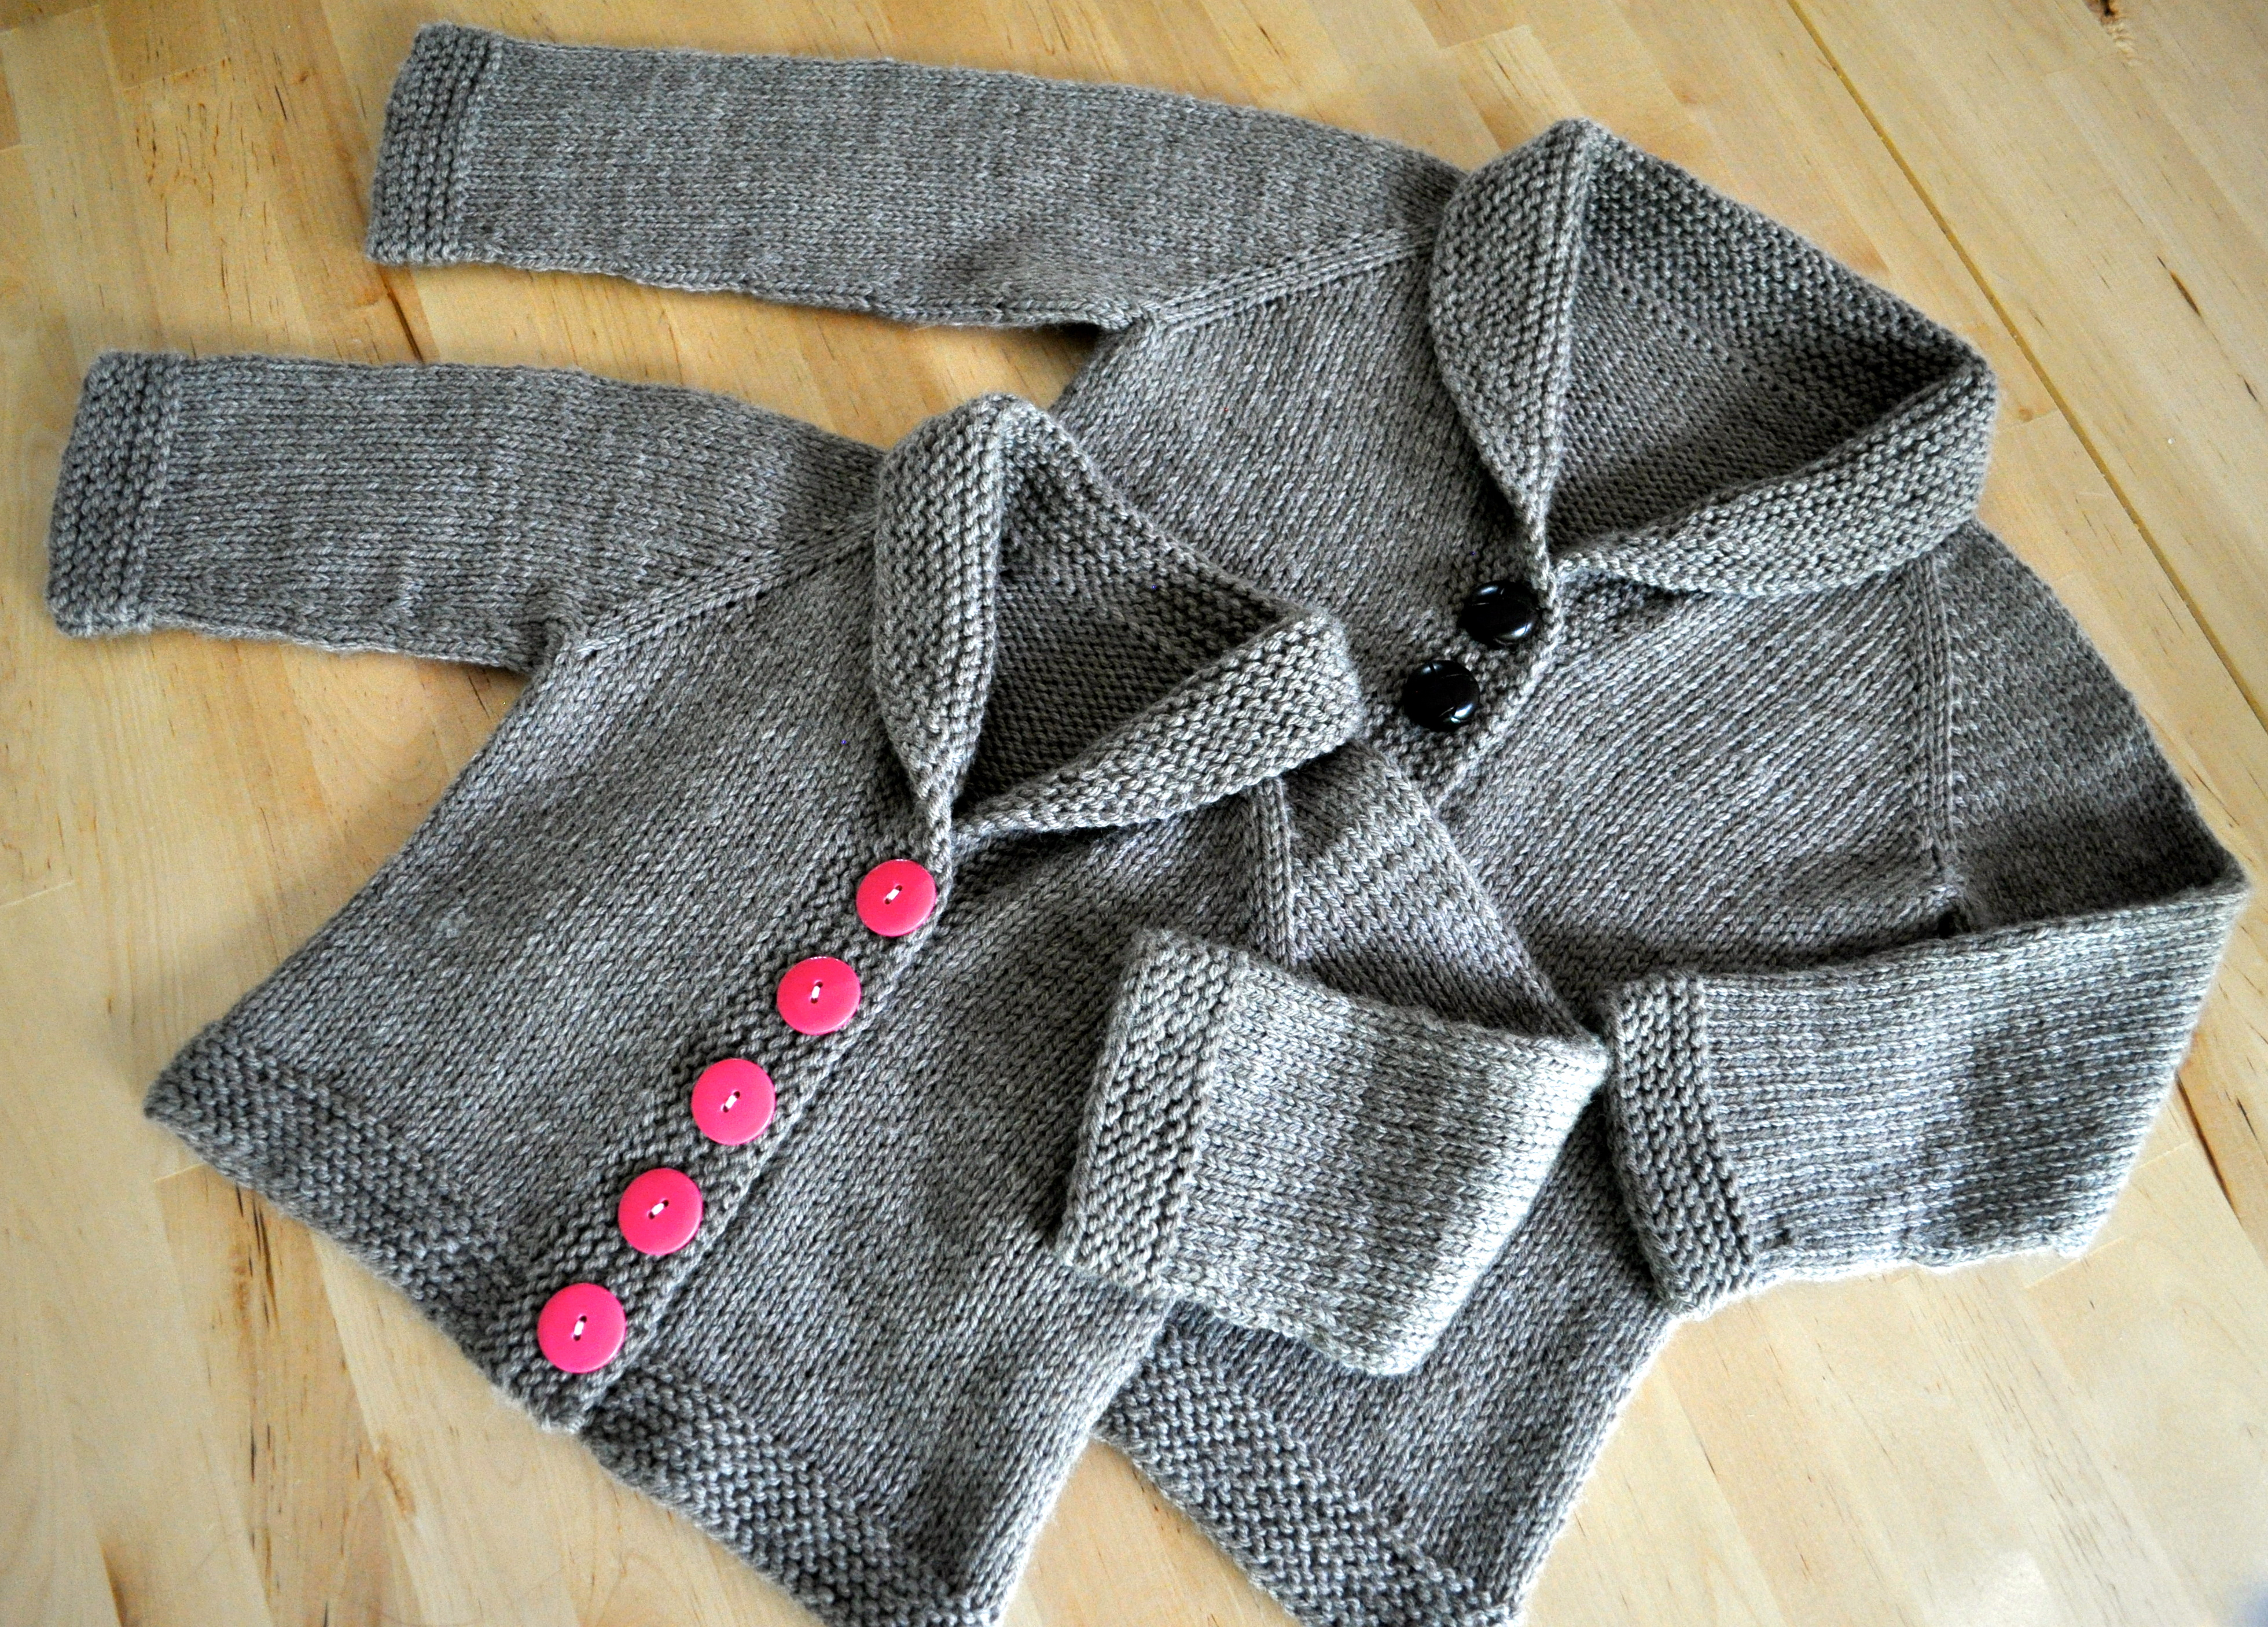 Knitting Patterns For Childrens Sweaters Free Ba Child Sophisticate Stockinette